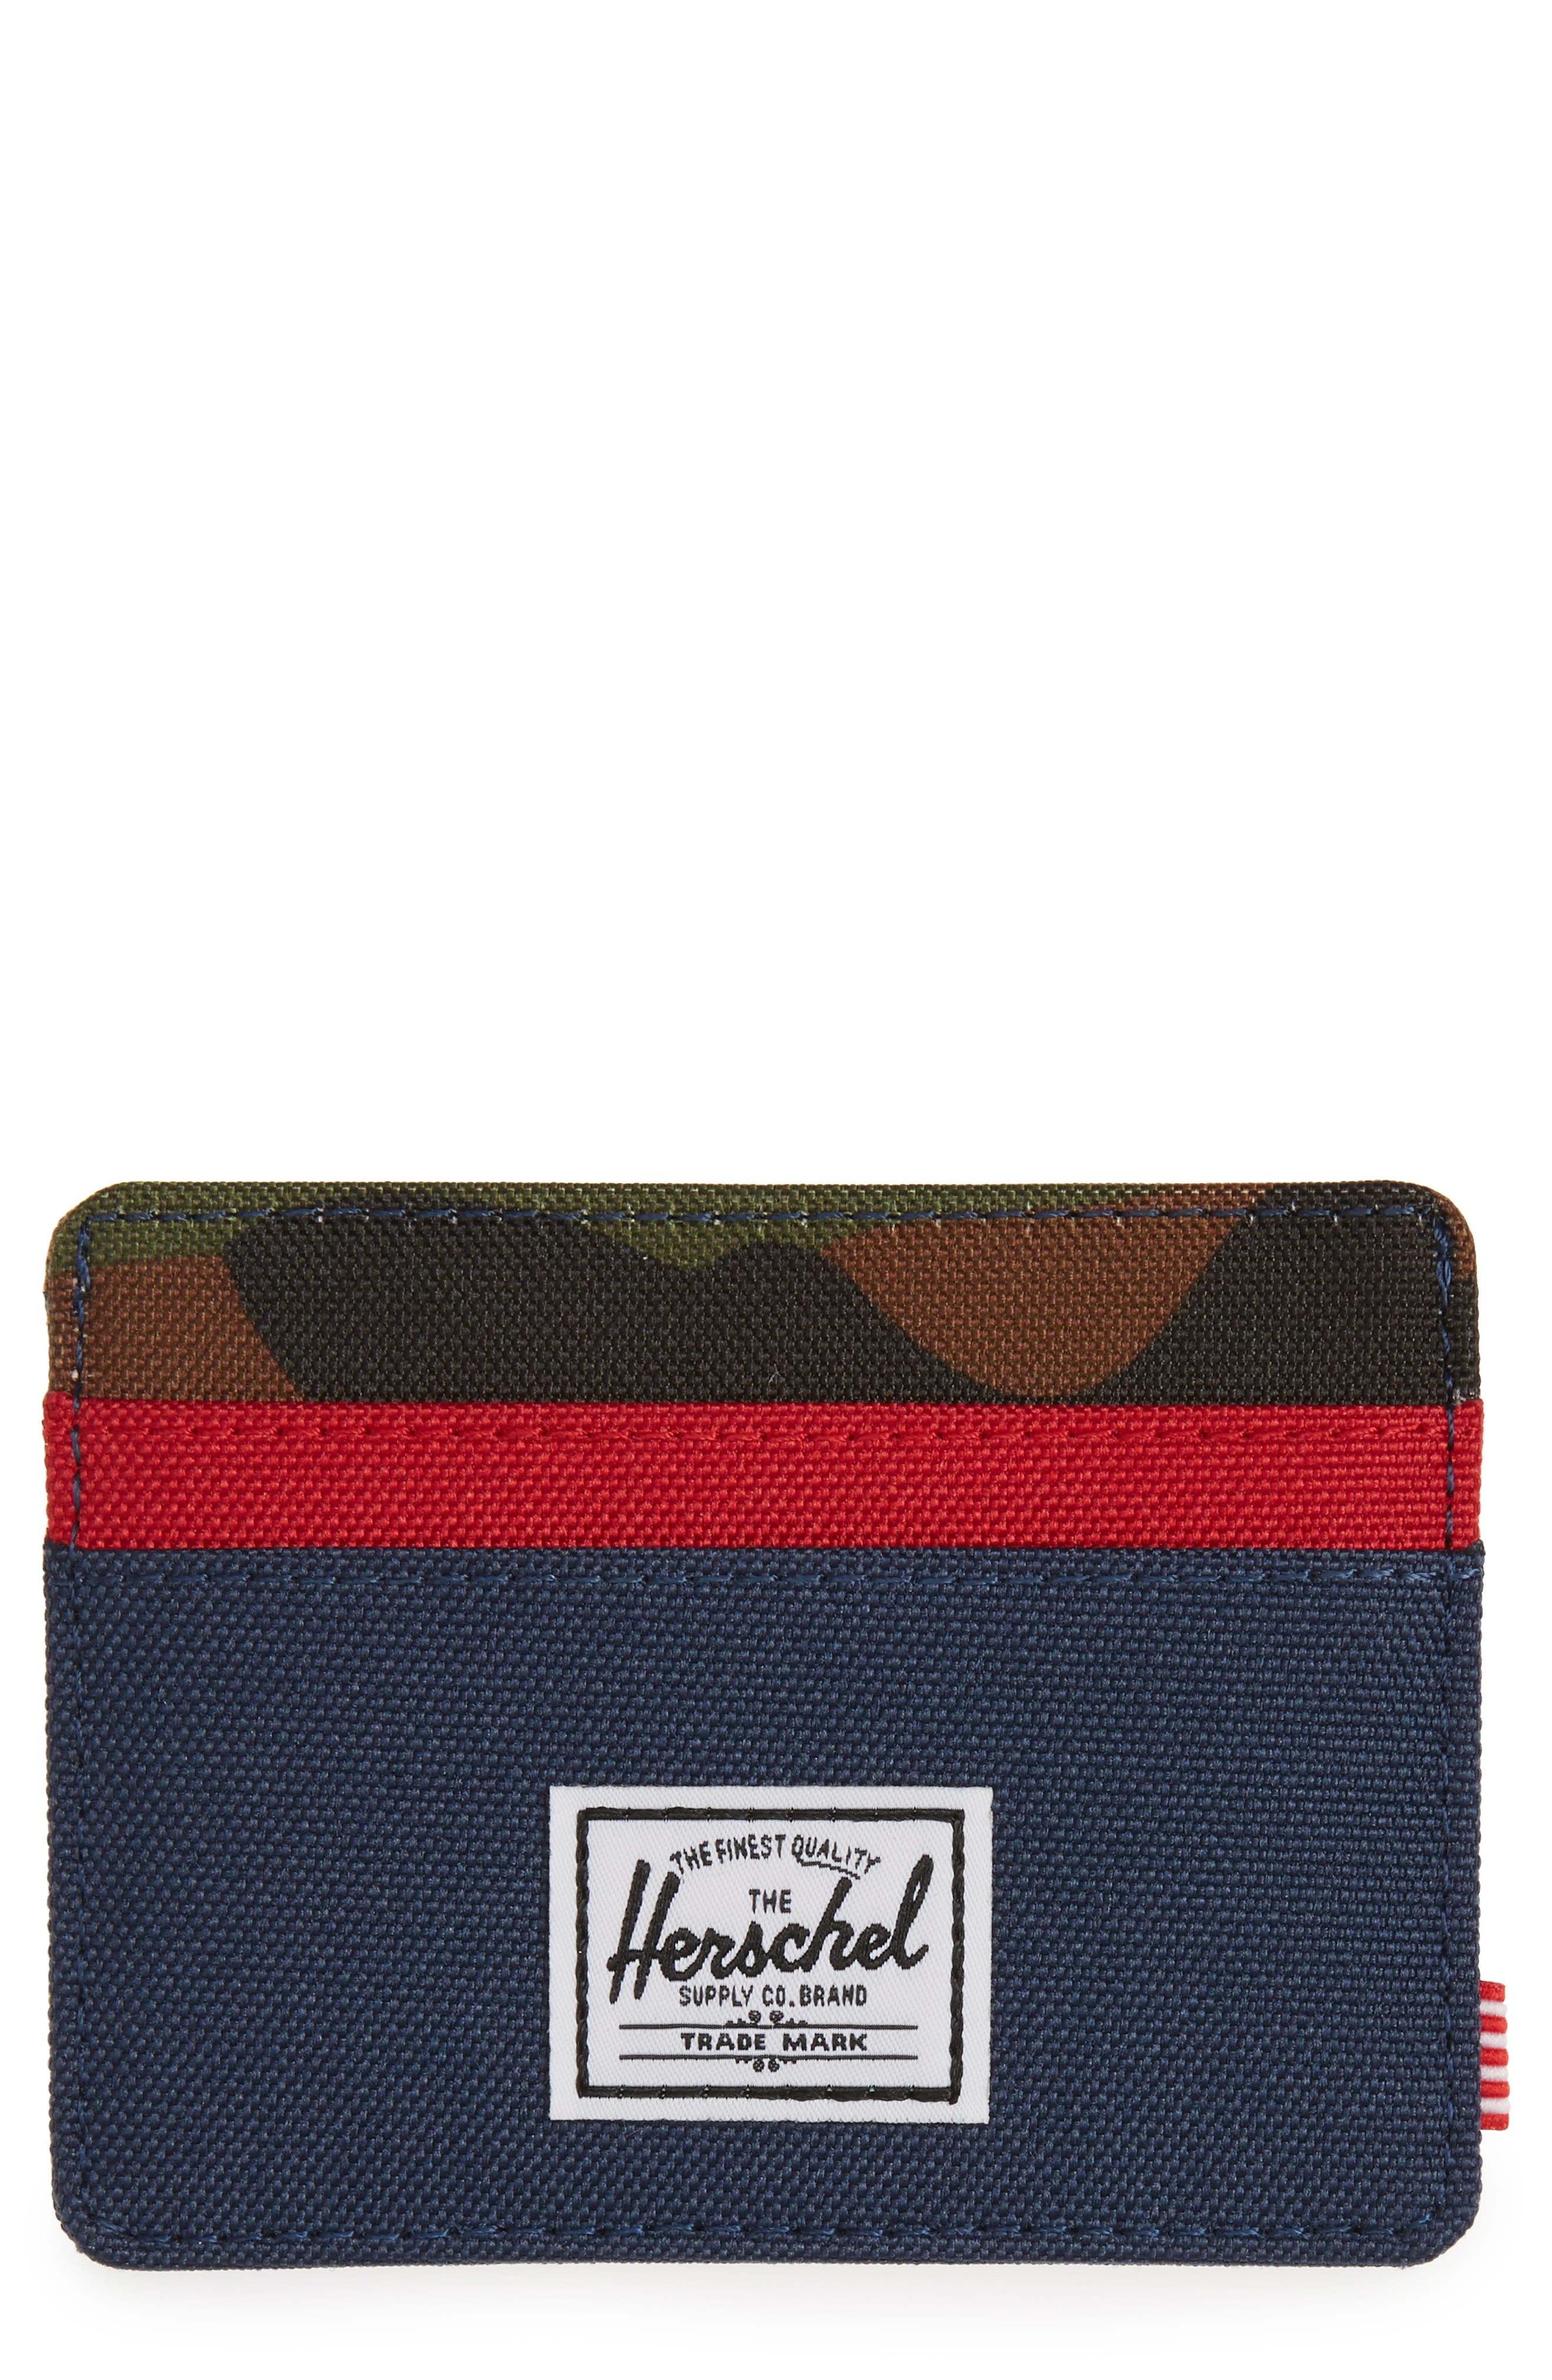 Charlie RFID Card Case,                         Main,                         color, Navy/ Red/ Camo